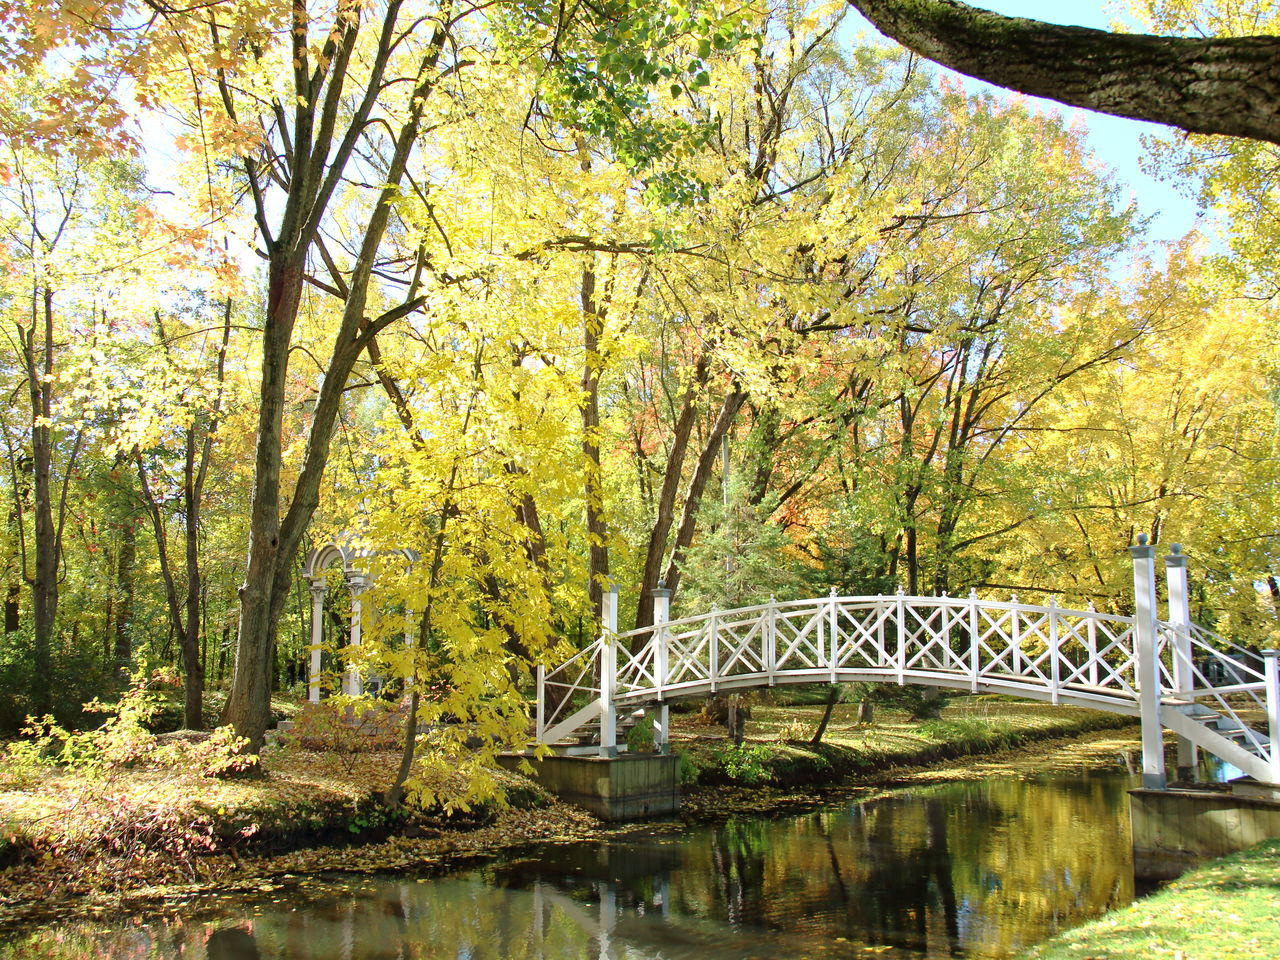 bridge - man made structure, connection, tree, autumn, river, built structure, architecture, nature, leaf, water, day, outdoors, no people, growth, transportation, forest, footbridge, beauty in nature